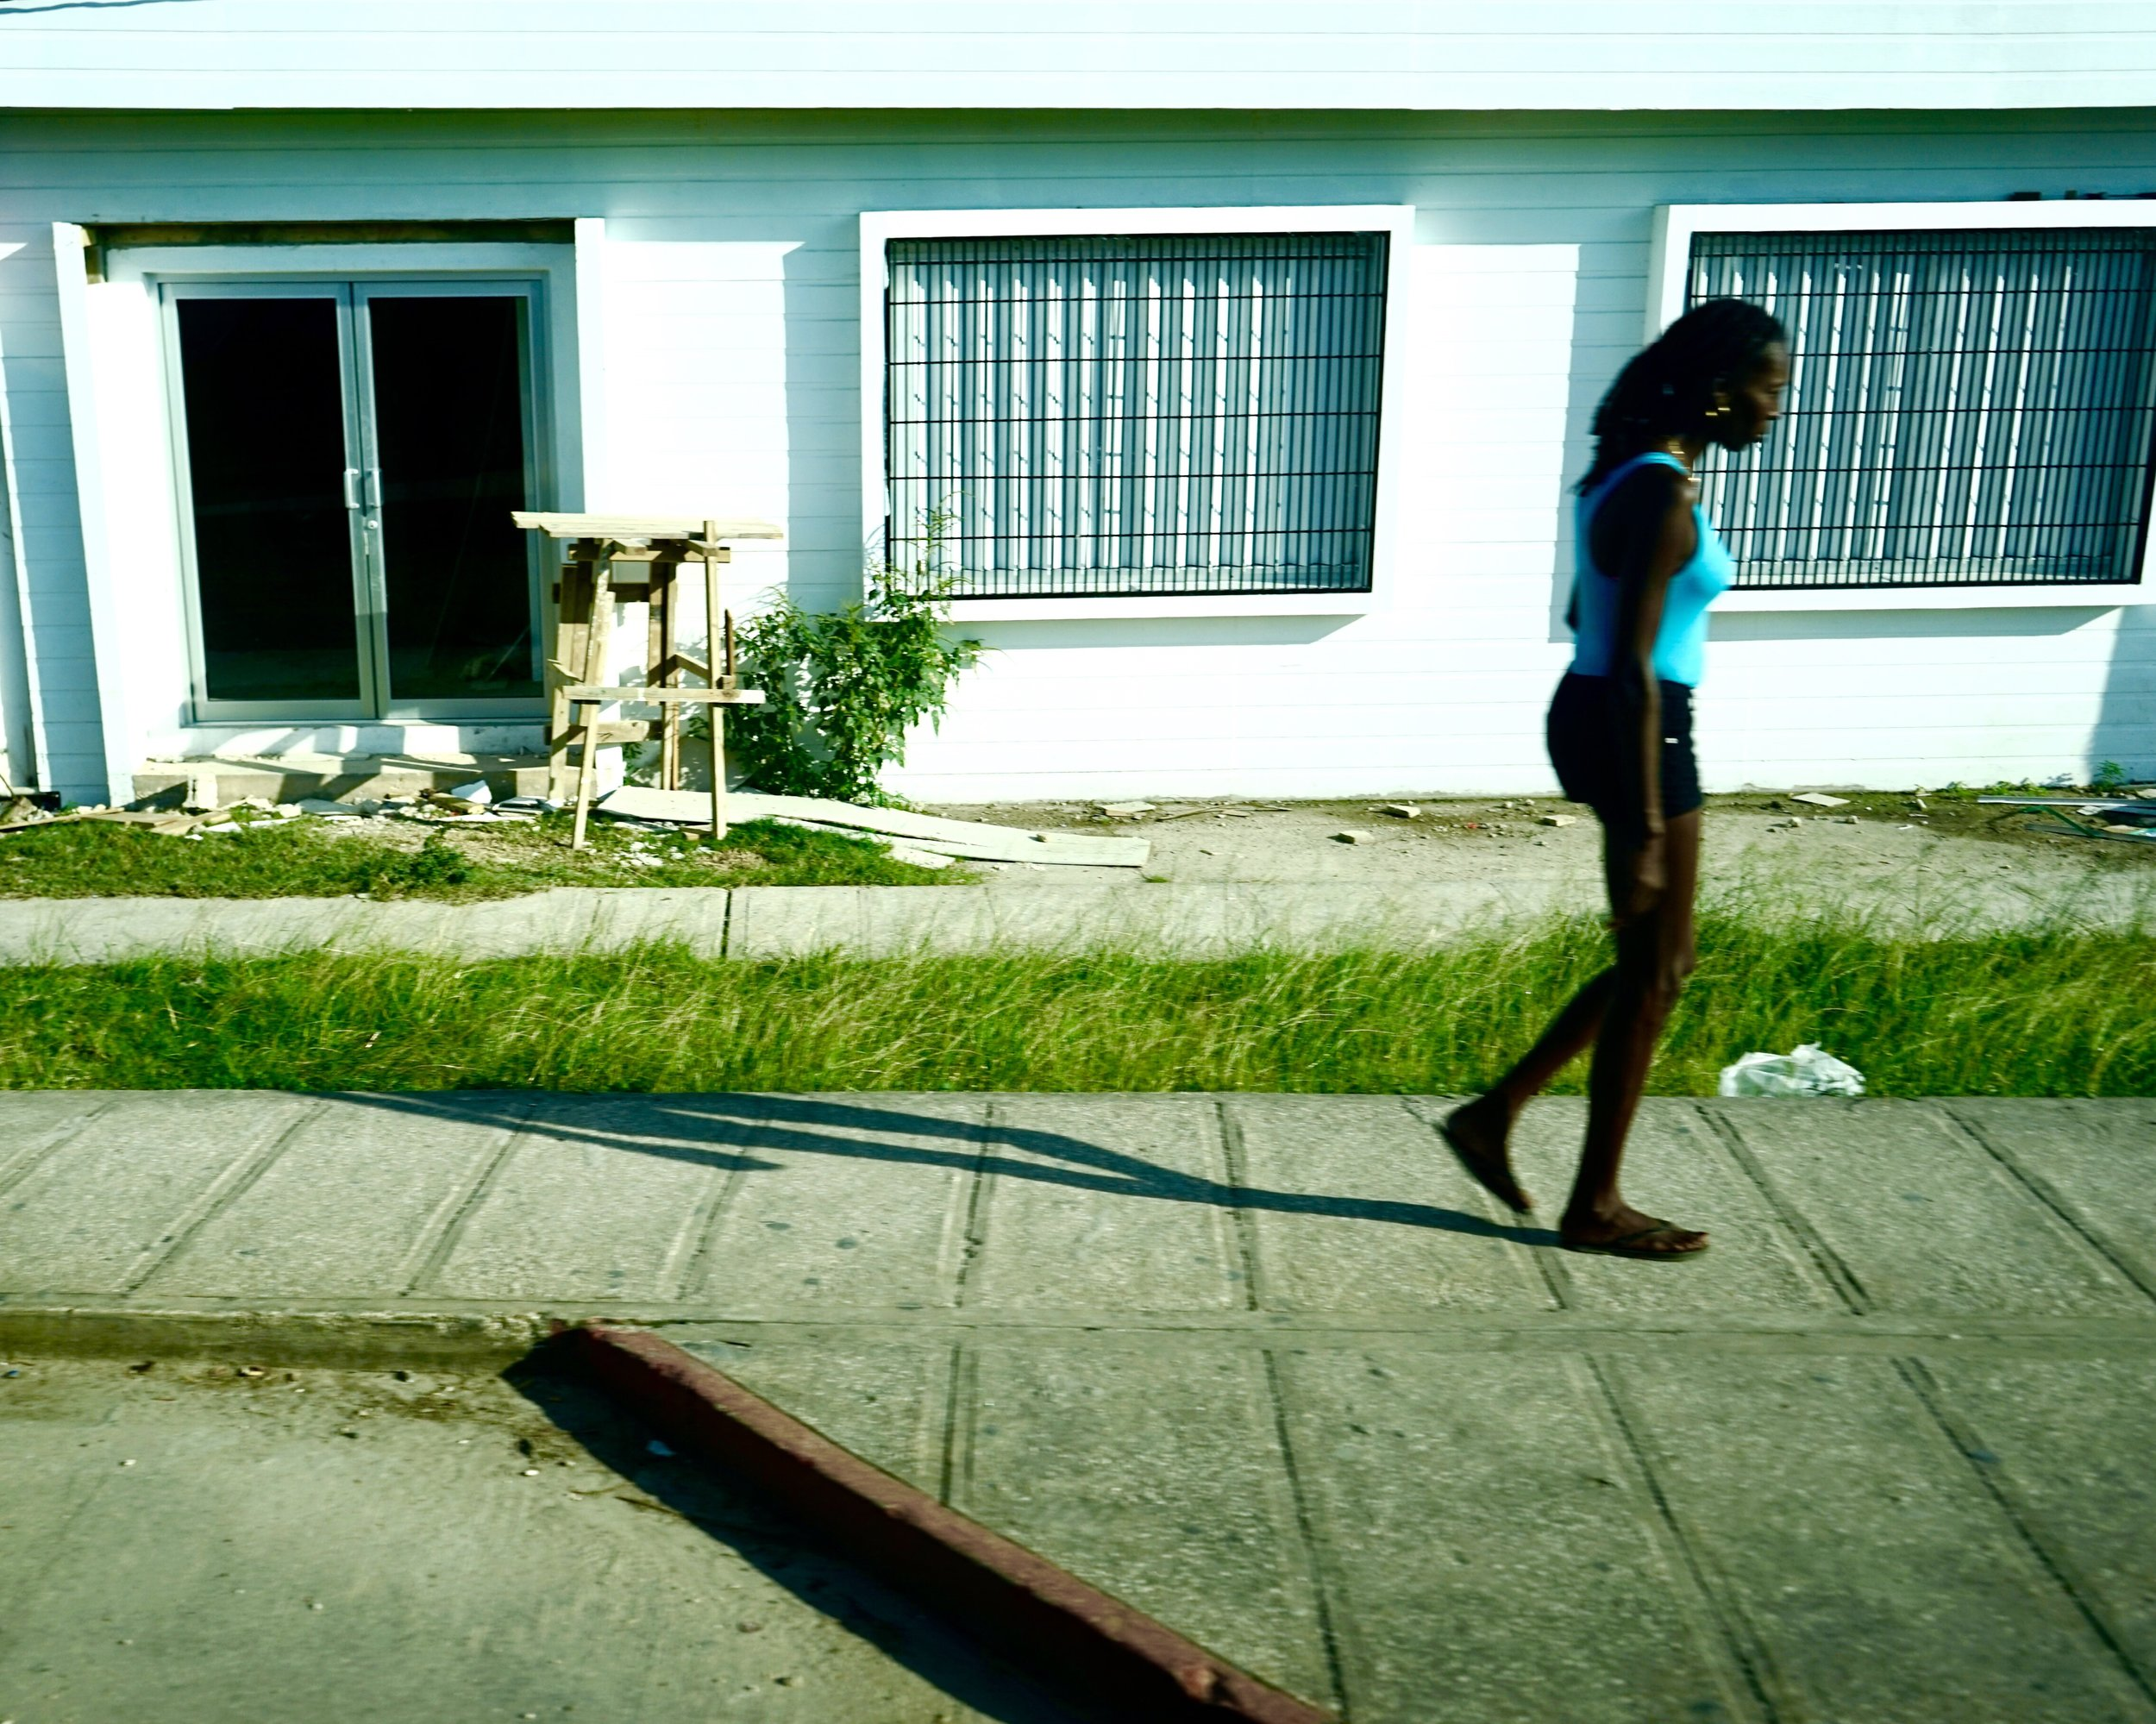 A woman walks along the road in Belize City, Belize.